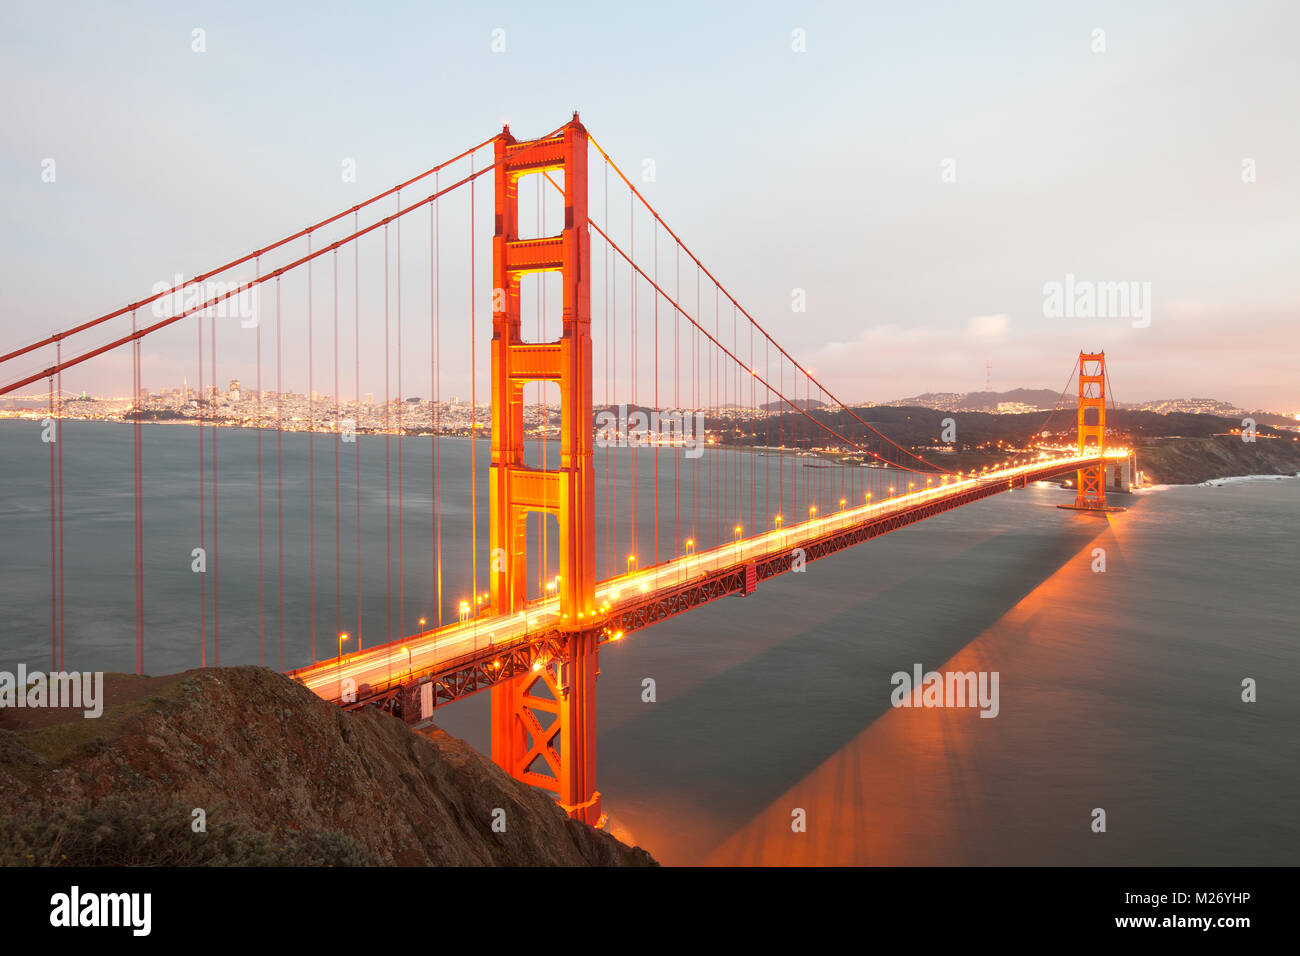 Die Golden Gate Bridge in San Francisco, Kalifornien Stockbild